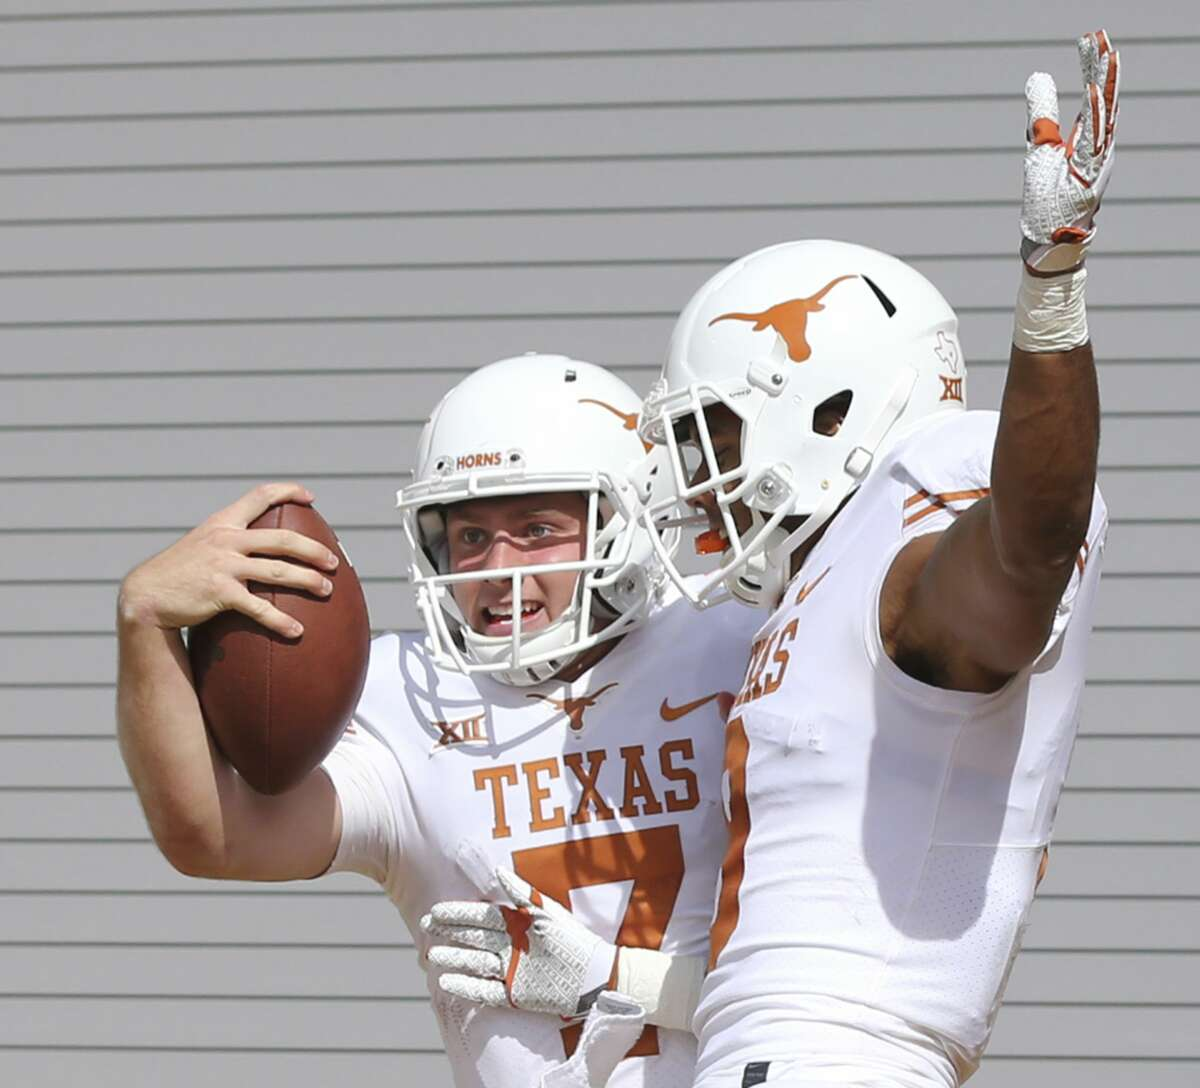 Texas quarterback Shane Buechele, left, celebrates his touchdown against Baylor with wide receiver Collin Johnson, right, in the first half of an NCAA college football game, Saturday, Oct. 28, 2017, in Waco, Texas. (AP Photo/Rod Aydelotte)